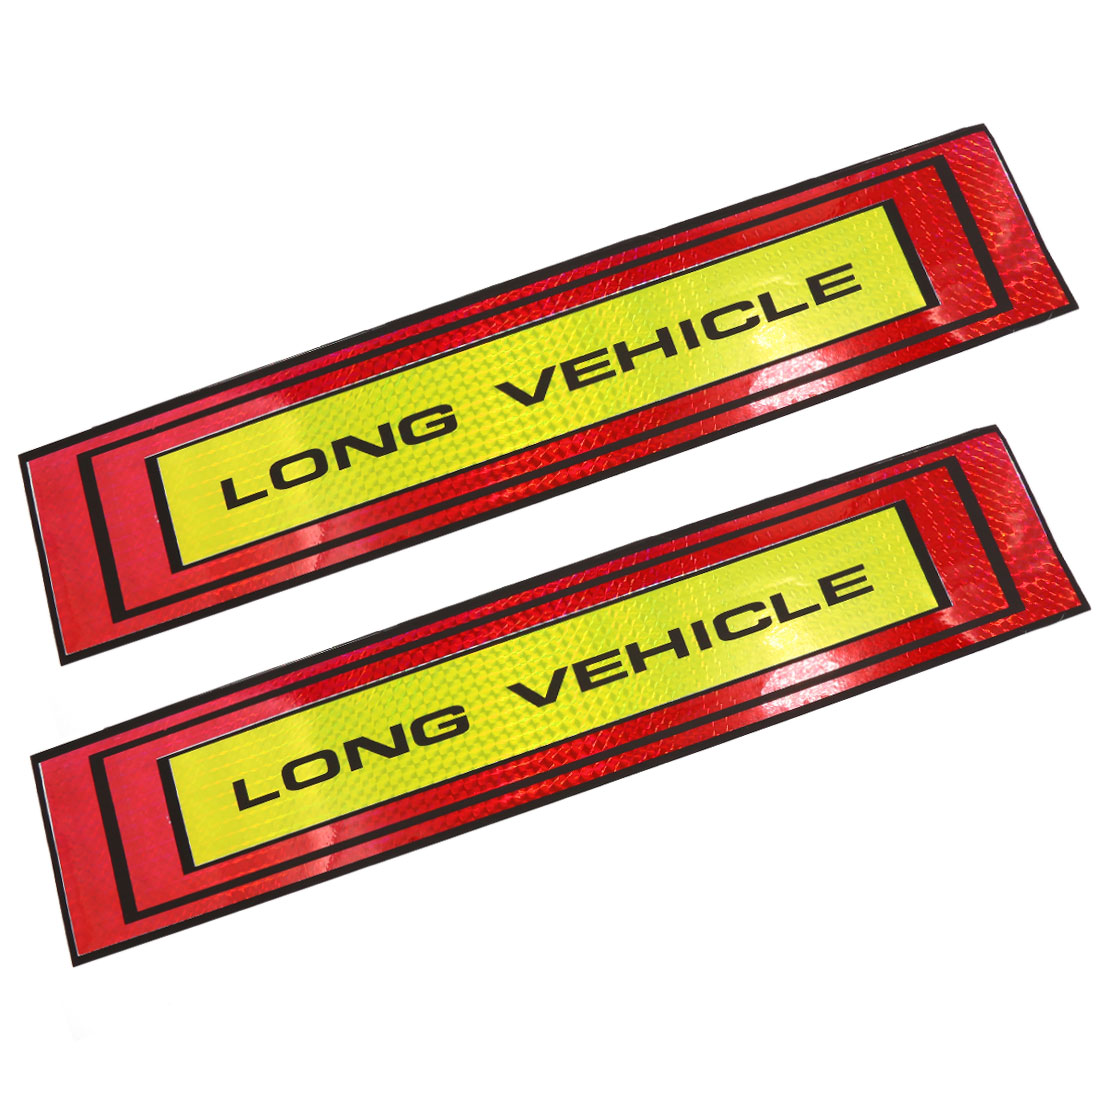 LONG VEHICLE Printed Car SUV Body Self Adhesive Reflective Safety Sticker 2PCS